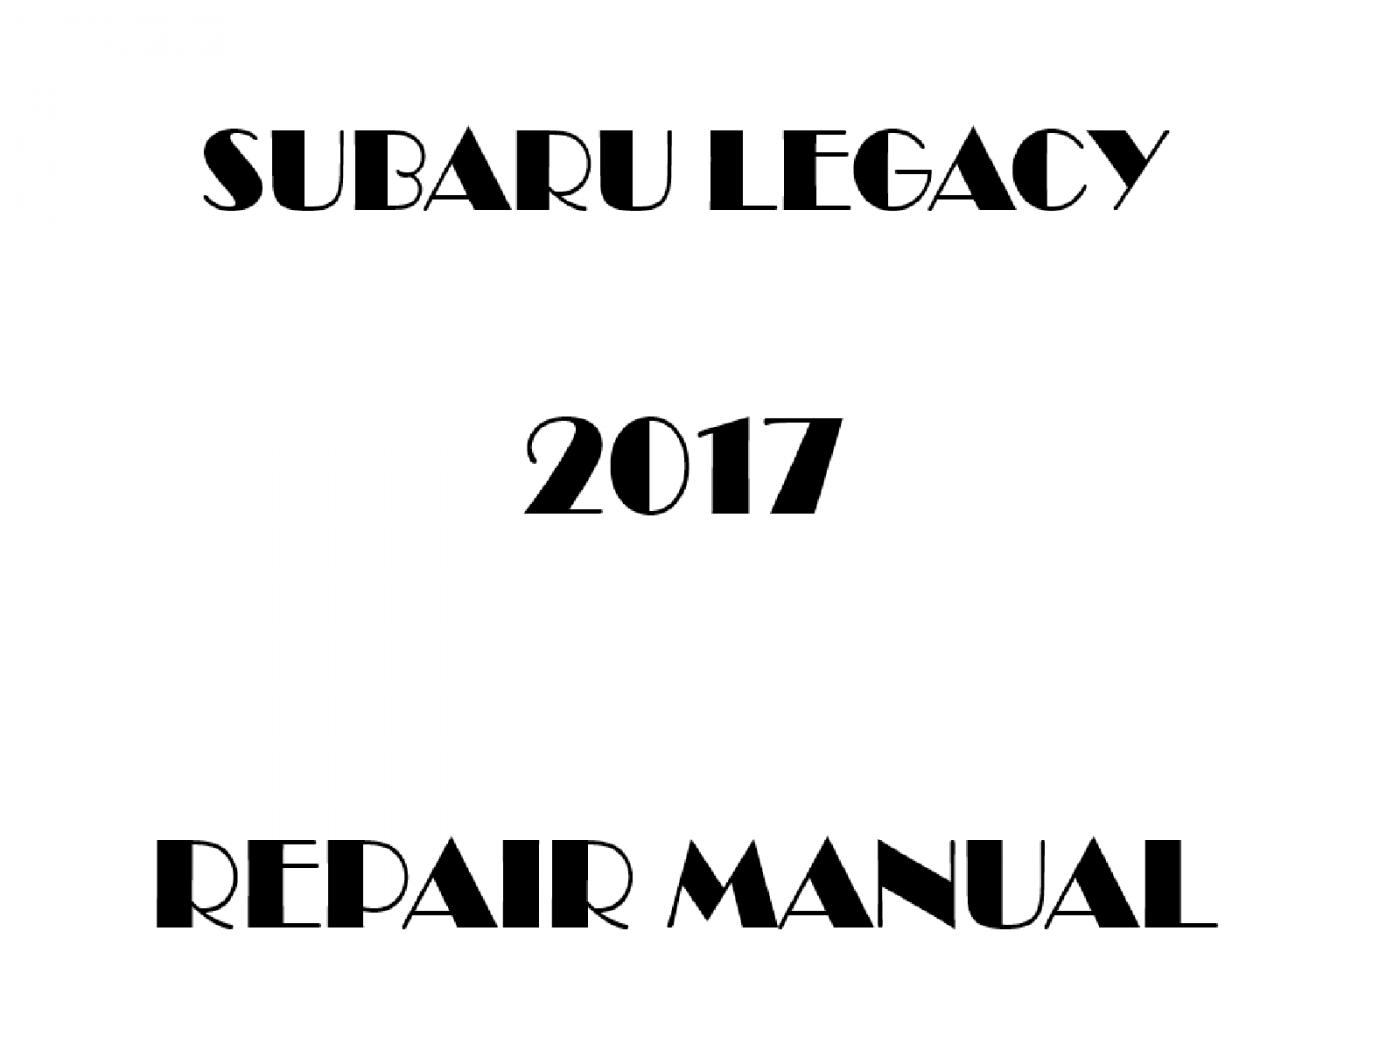 2017 Subaru Legacy repair manual